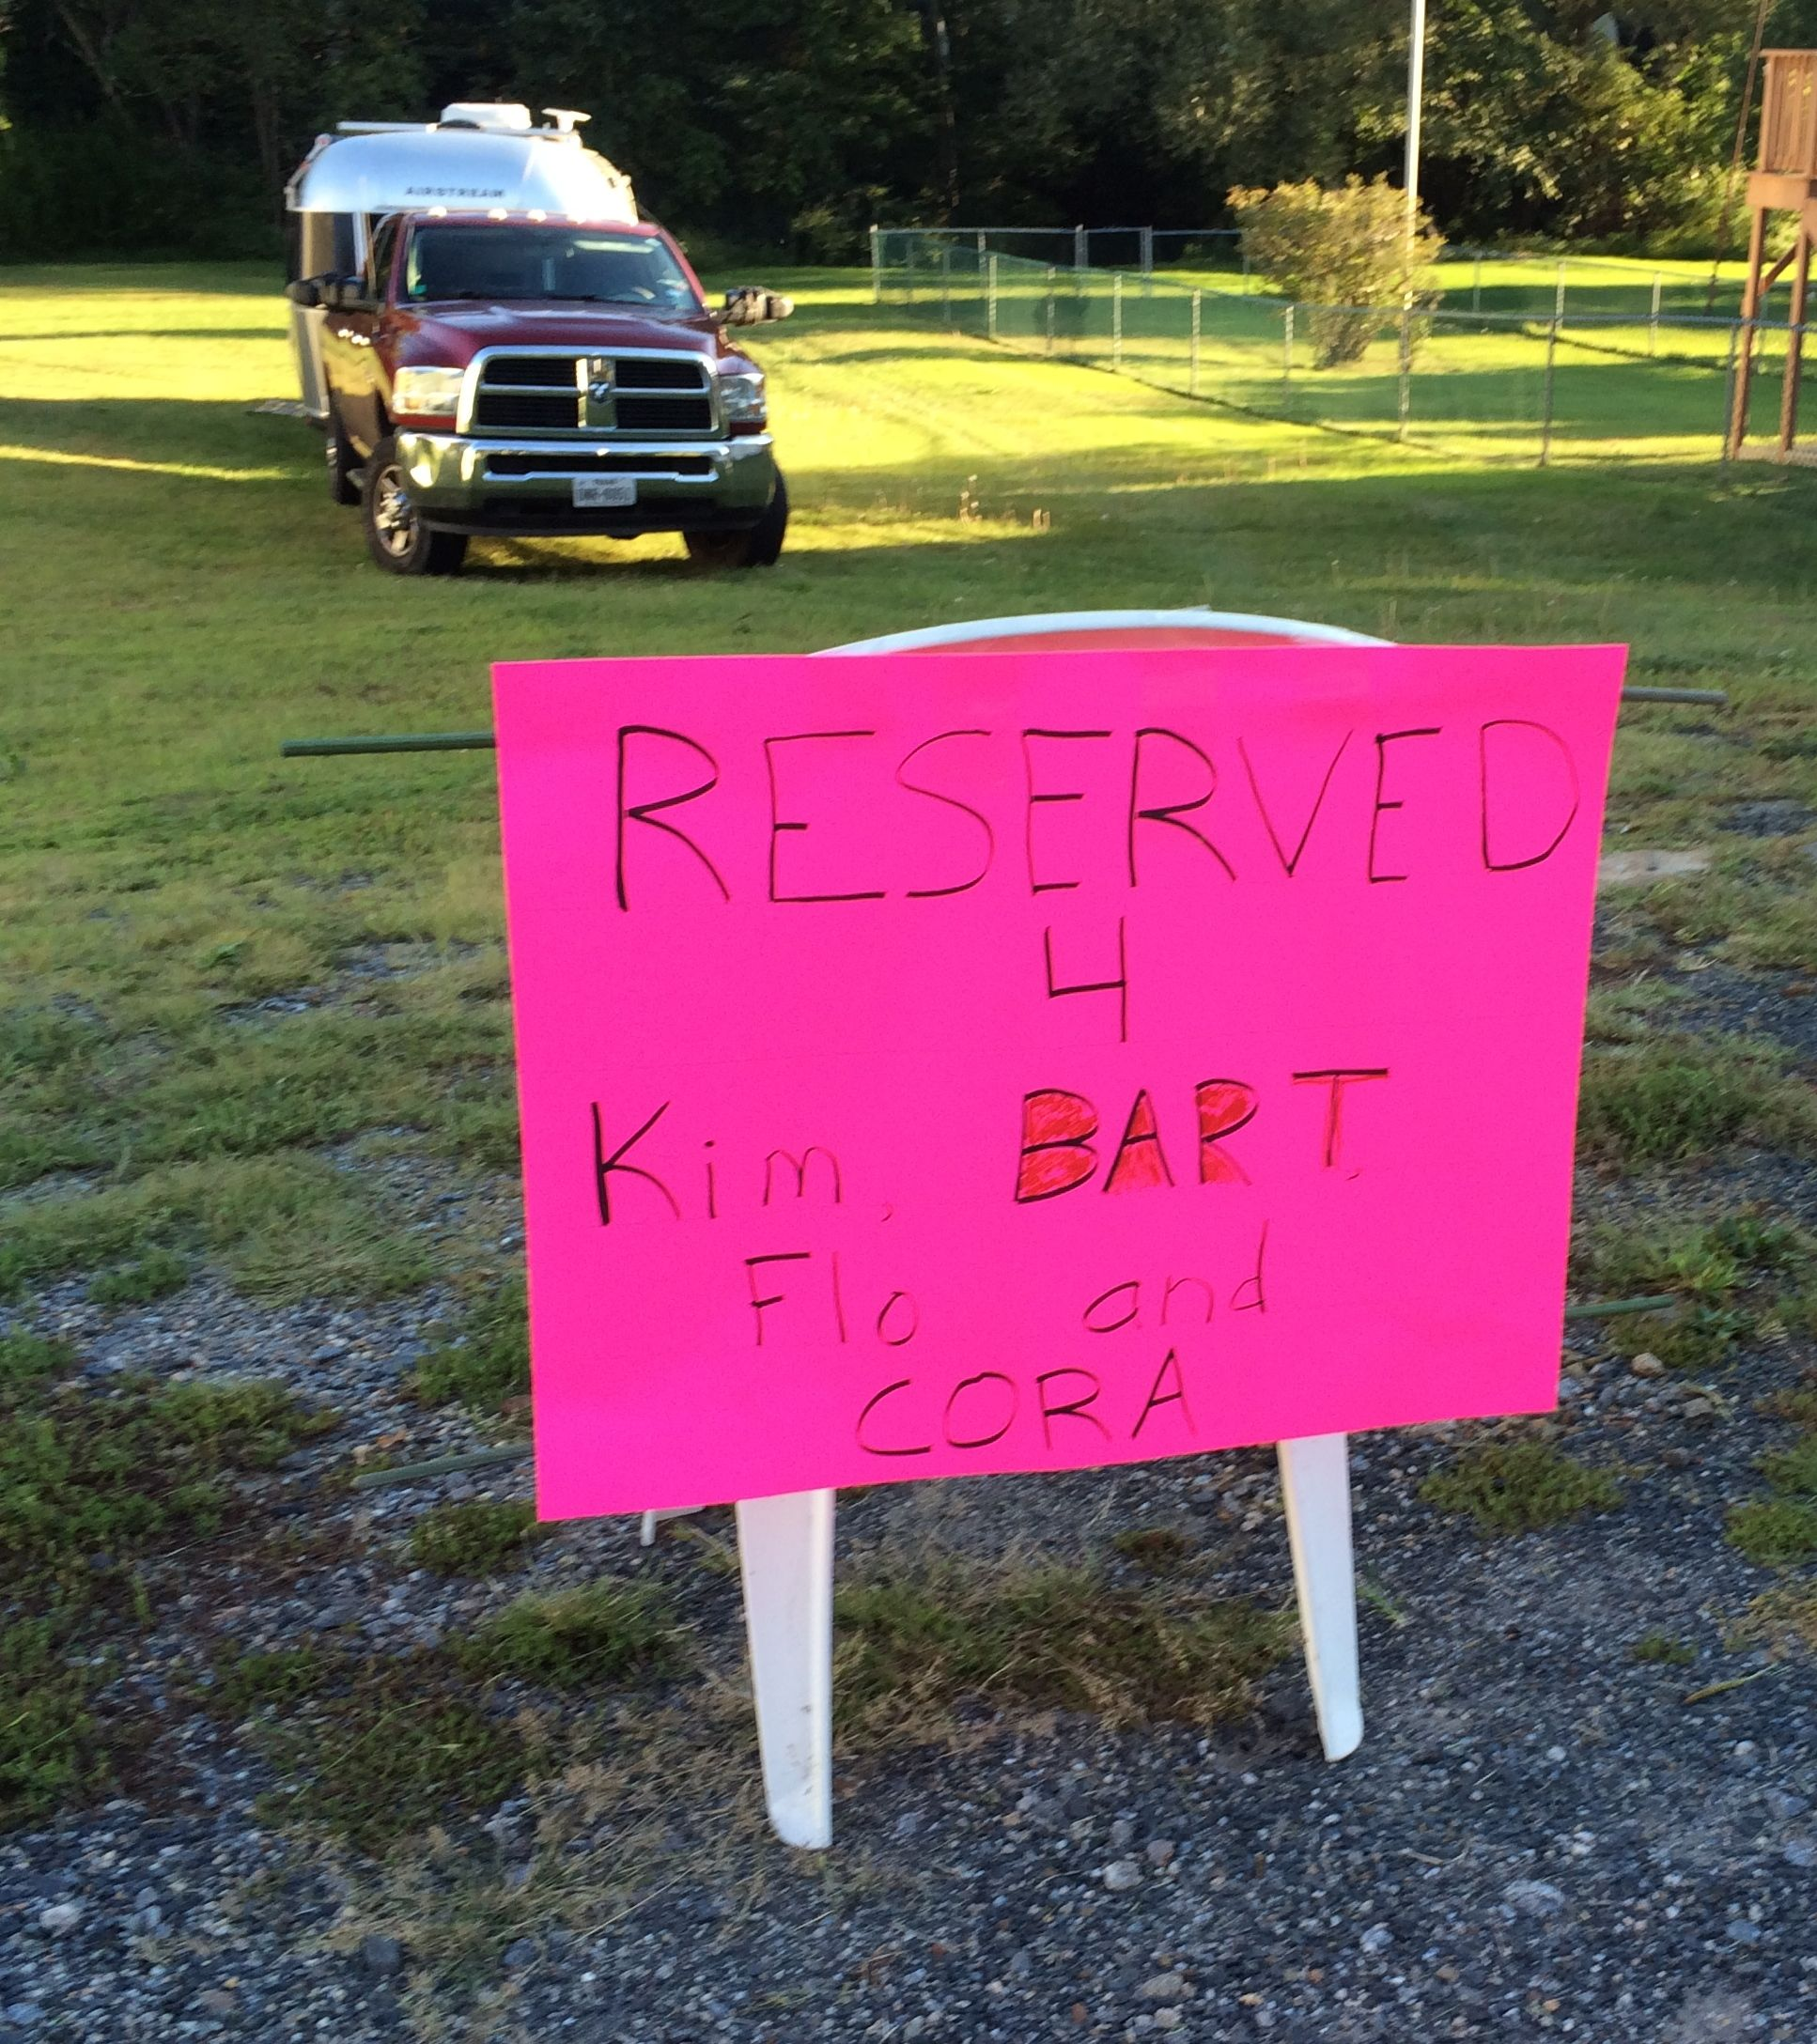 Reserved for Kim, Bart, Flo and Cora.